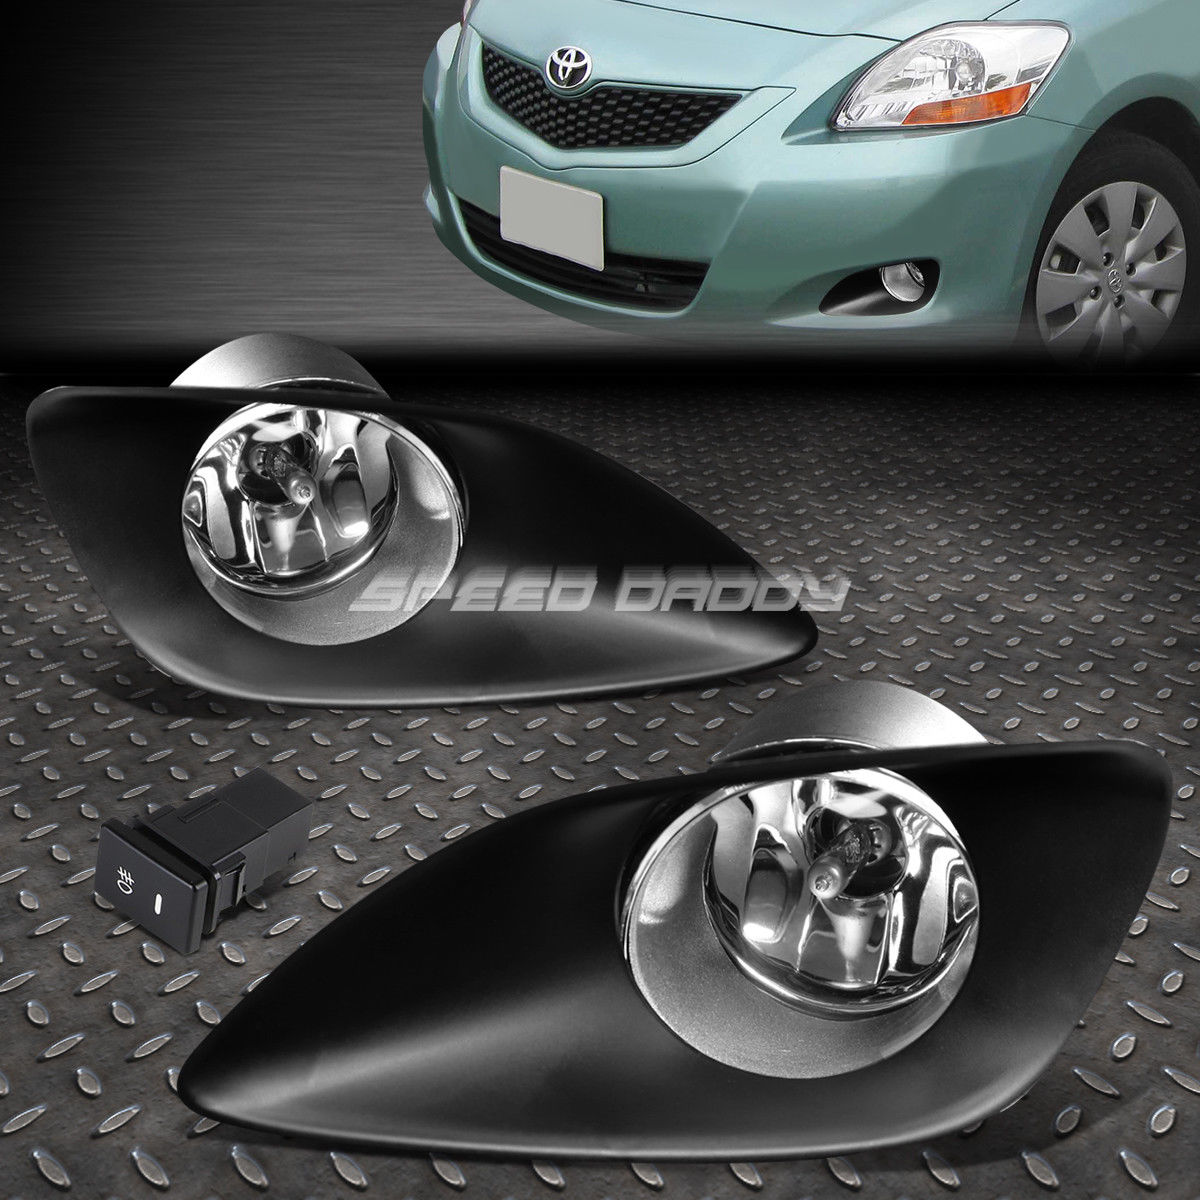 フォグライト FOR 06-11 TOYOTA YARIS XP90 4-DOOR CRYSTAL LENS OE DRIVING FOG LIGHT LAMP+SWITCH FOR 06-11 TOYOTA YARIS XP90 4-DOORクリスタルレンズOE駆動フォグライトランプ+スイッチ